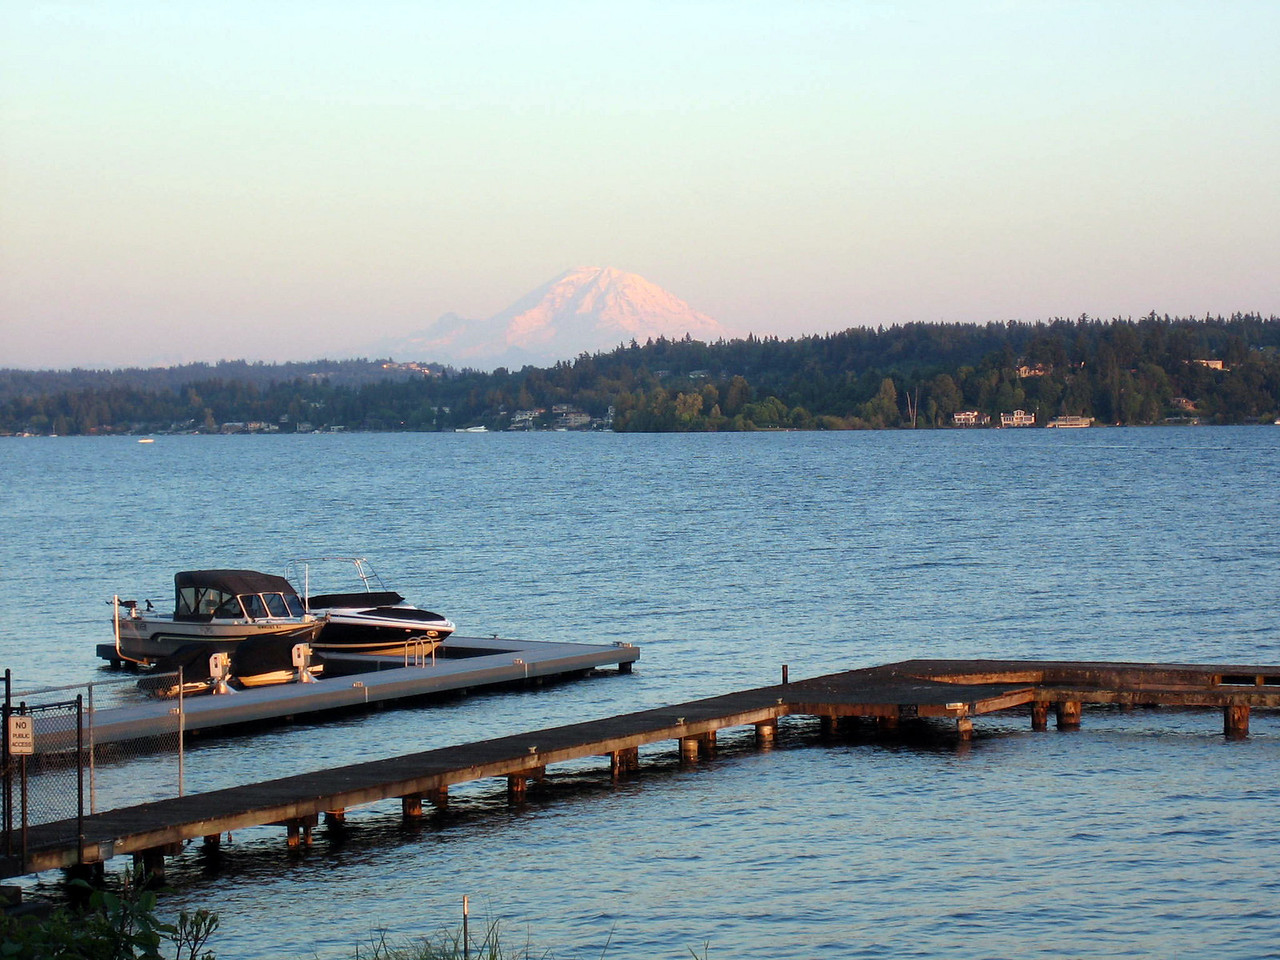 This is a great spot I found in Medina. Bill Gates lives somewhere nearby. That's Mount Rainier in the background.